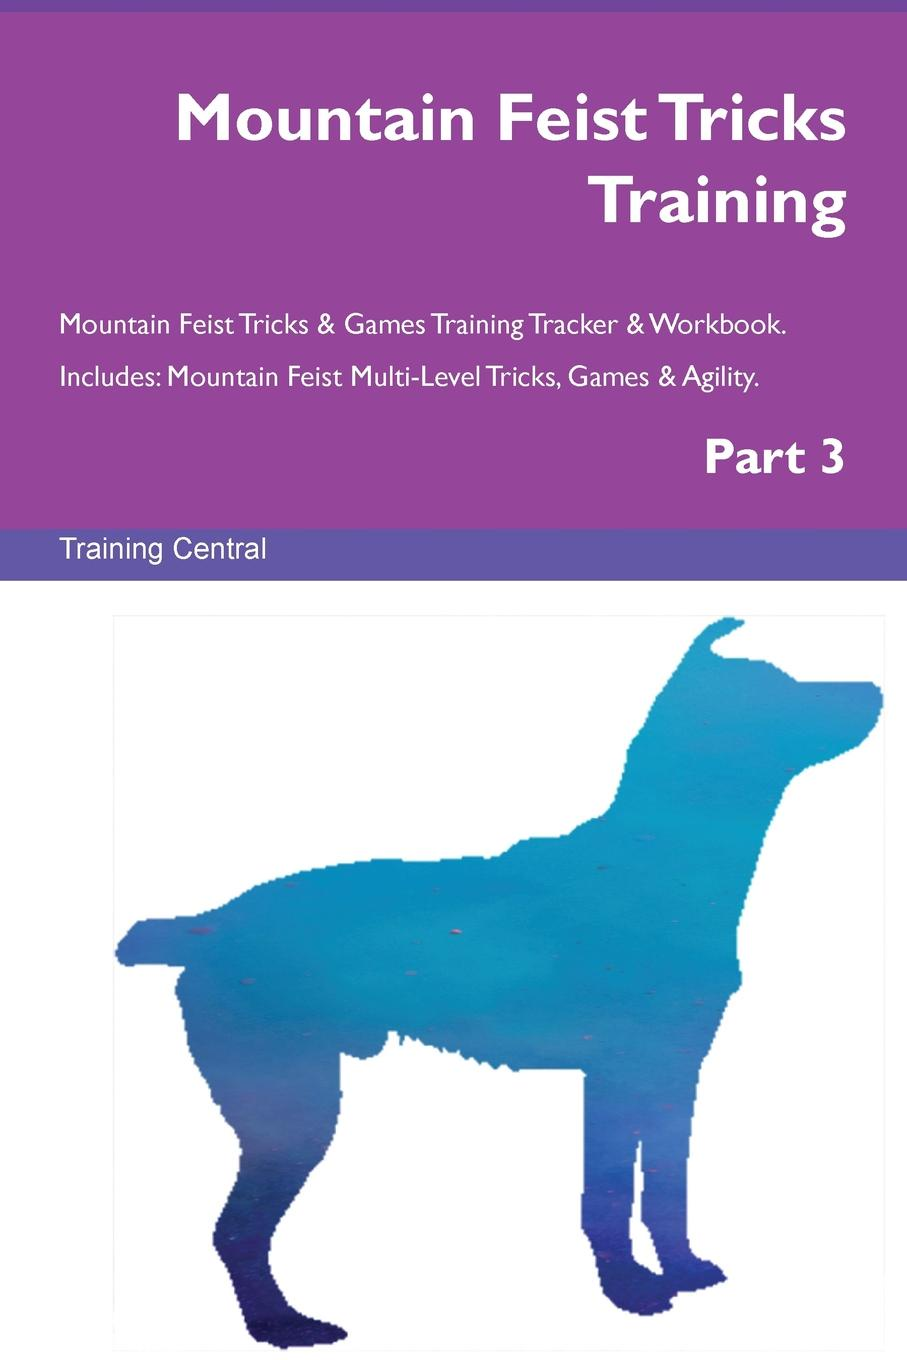 Training Central Mountain Feist Tricks Training Mountain Feist Tricks & Games Training Tracker & Workbook. Includes. Mountain Feist Multi-Level Tricks, Games & Agility. Part 3 training central mountain feist tricks training mountain feist tricks